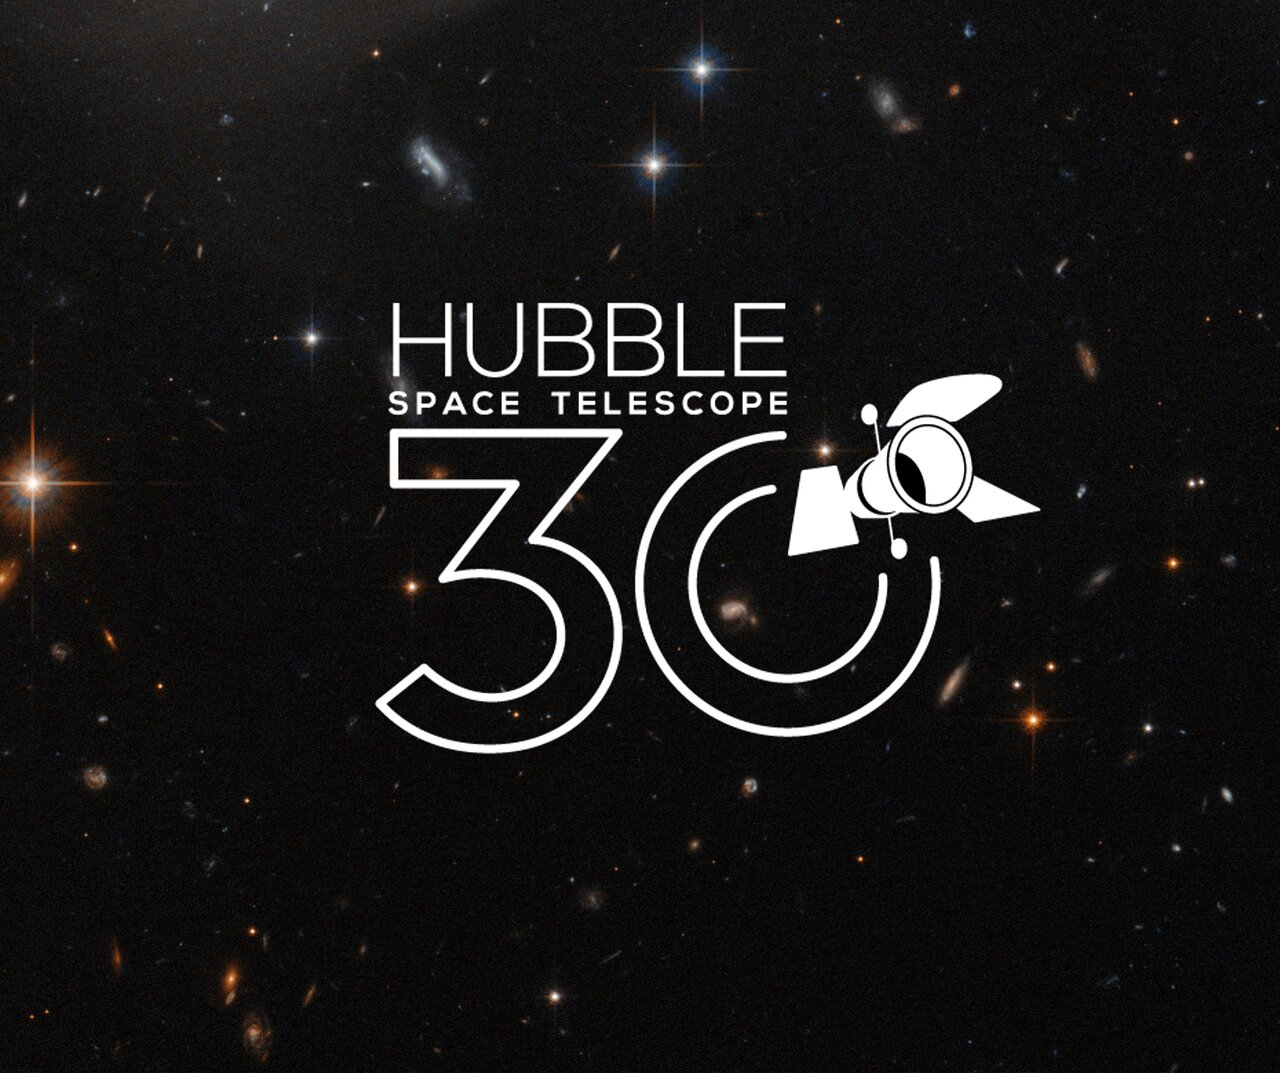 Hubble 30th Anniversary Image Unveiling Solicitation Call Announced